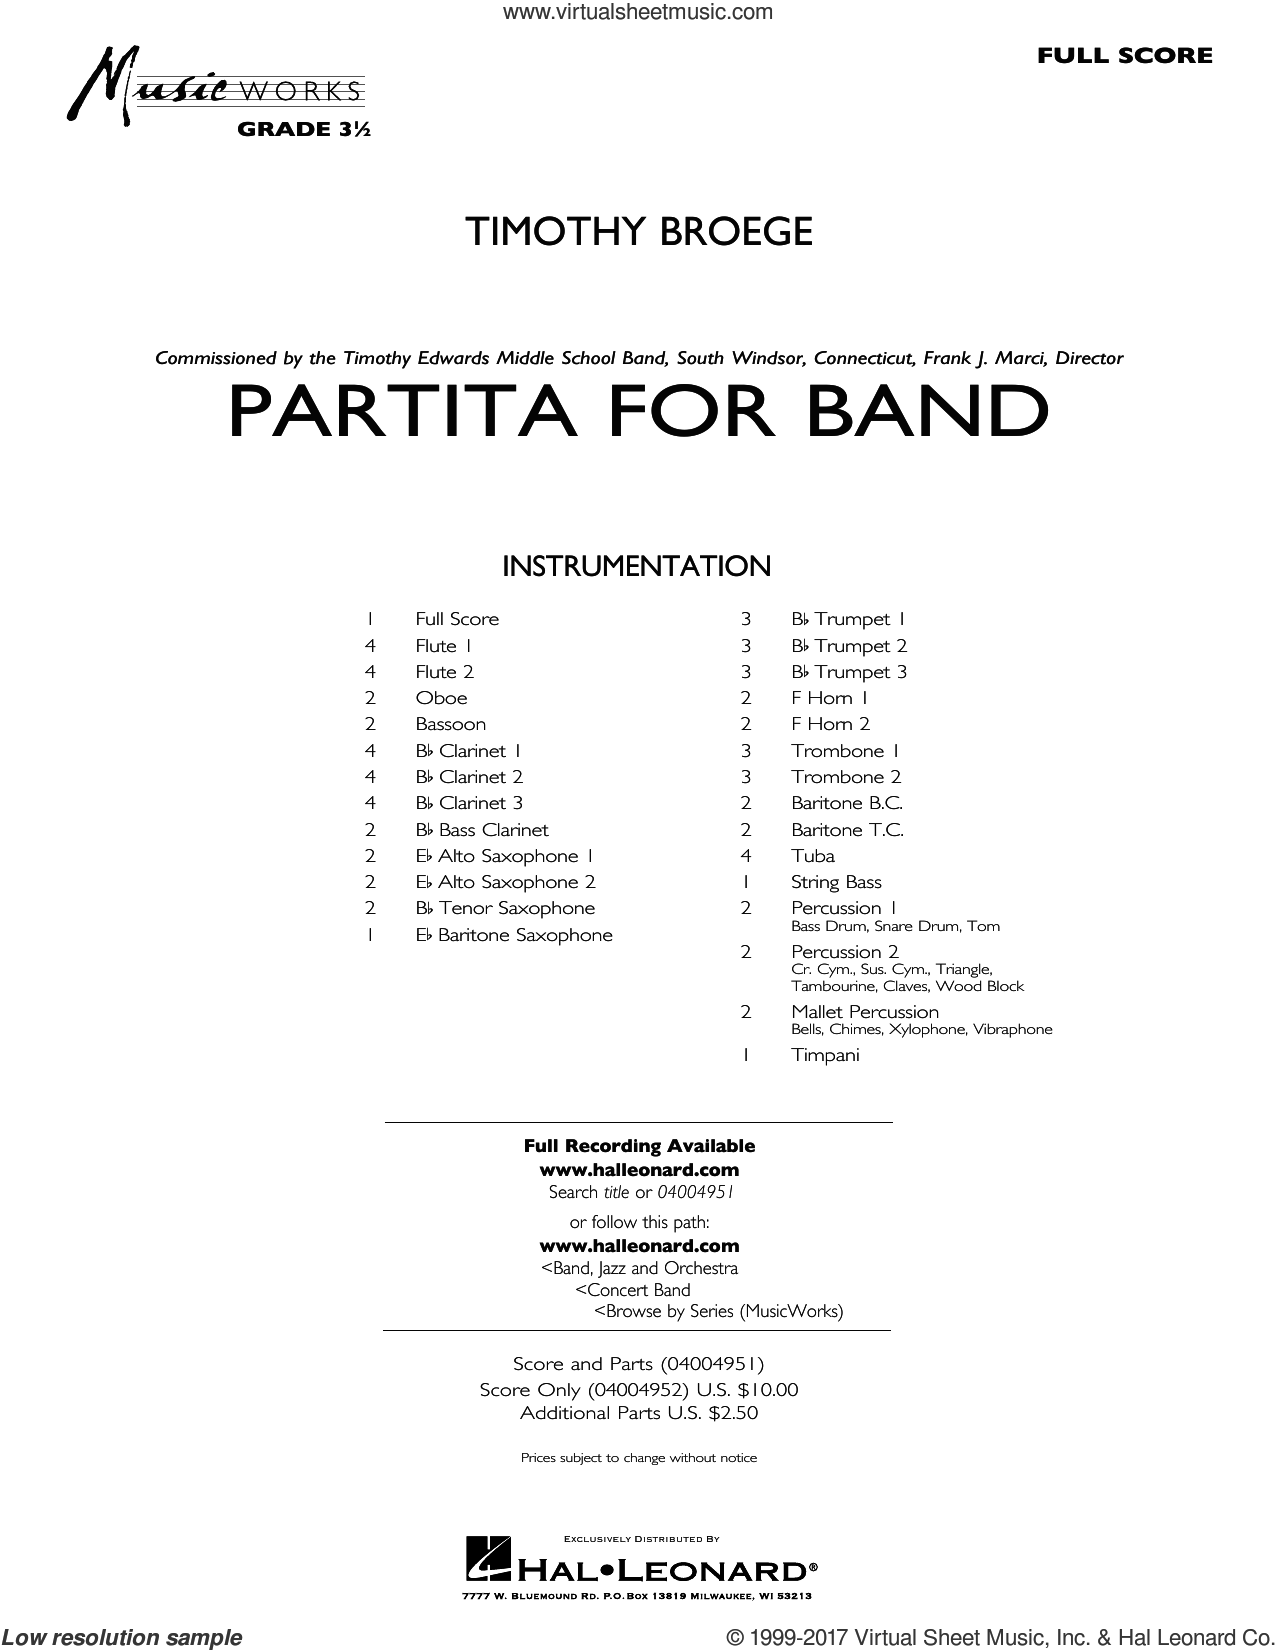 Broege - Partita for Band sheet music (complete collection) for concert band